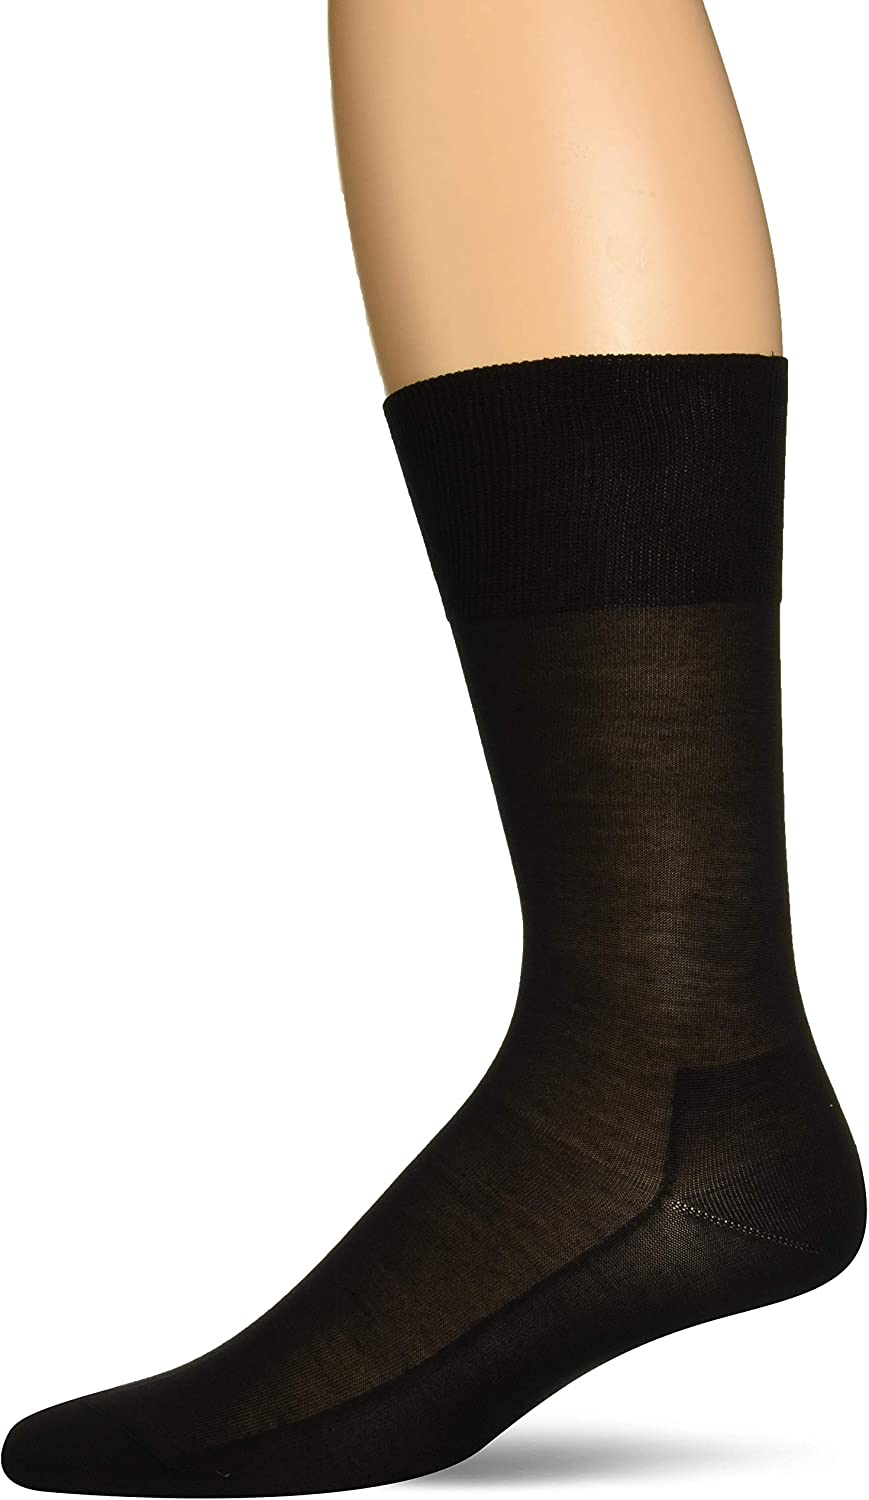 FALKE Mens No. 4 Pure Silk Dress Sock - 92% Silk, Black, US sizes 6.5 to 13.5, 1 Pair